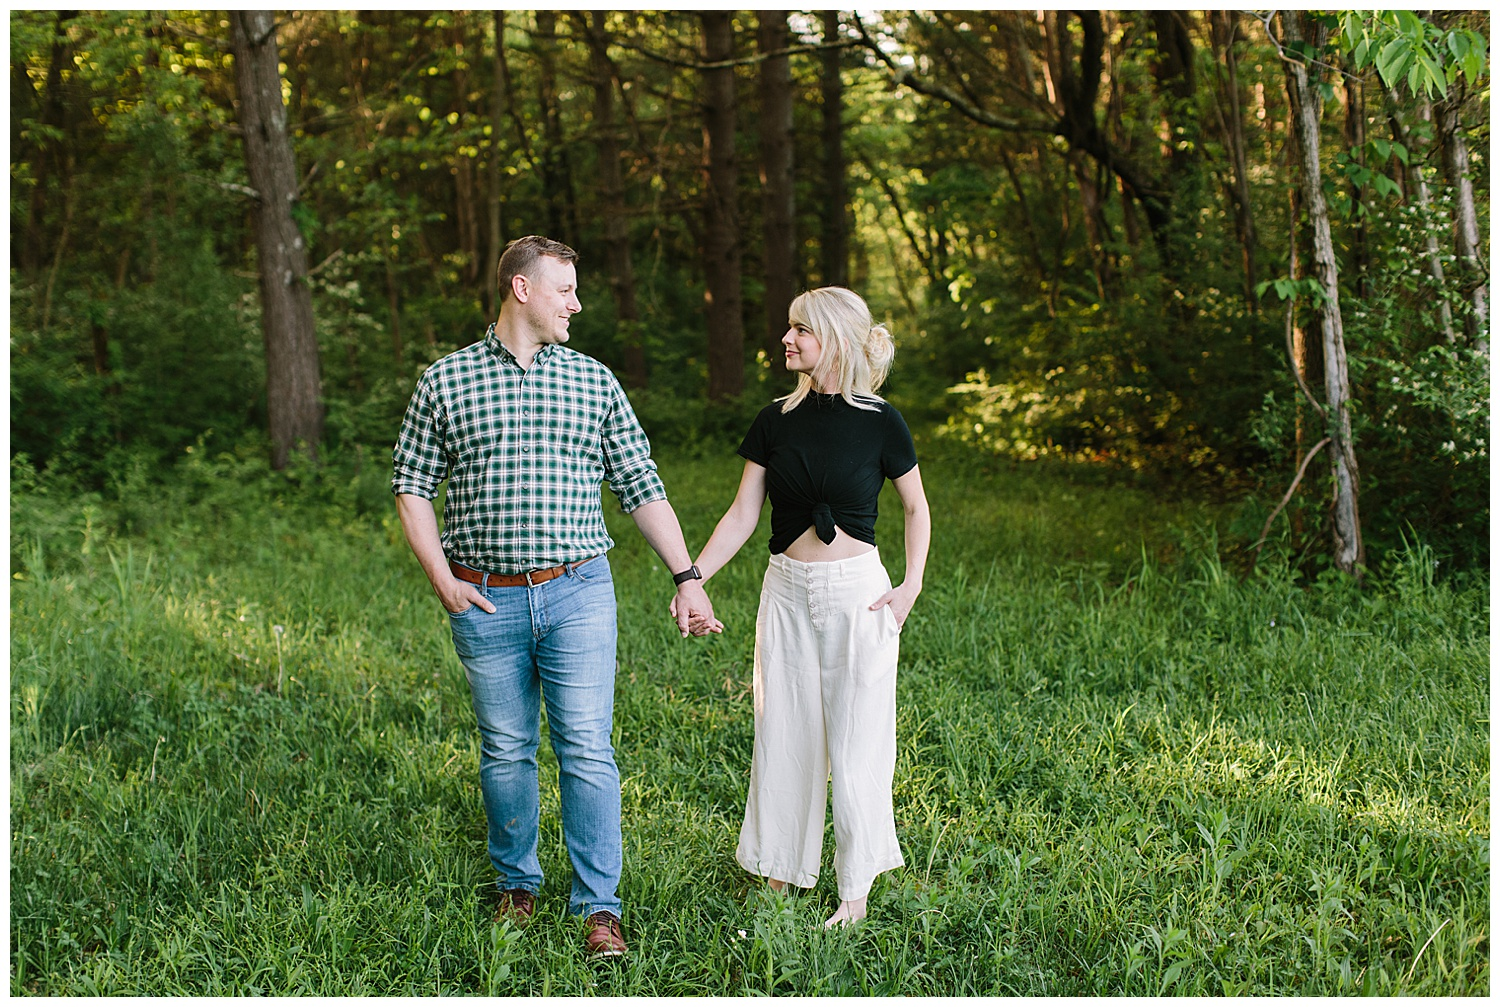 trent.and.kendra.photography.bernheim.forest.photos-24.jpg